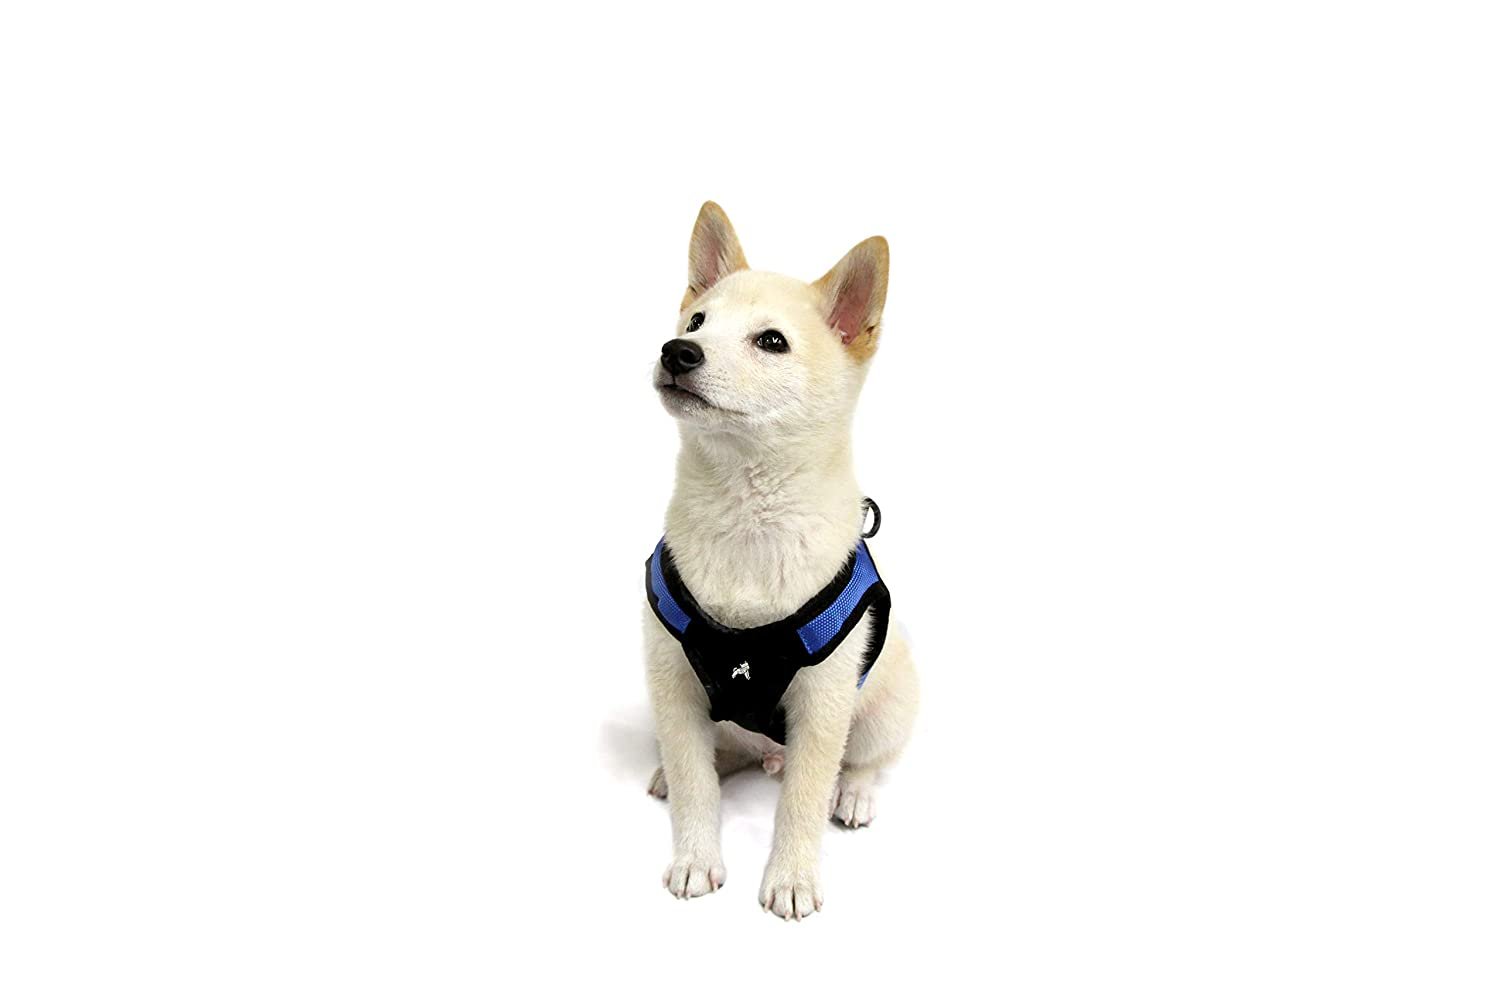 Gooby Escape Free Easy Fit Dog Harness for Dogs That Like to Escape Their Harness, bluee, X-Small